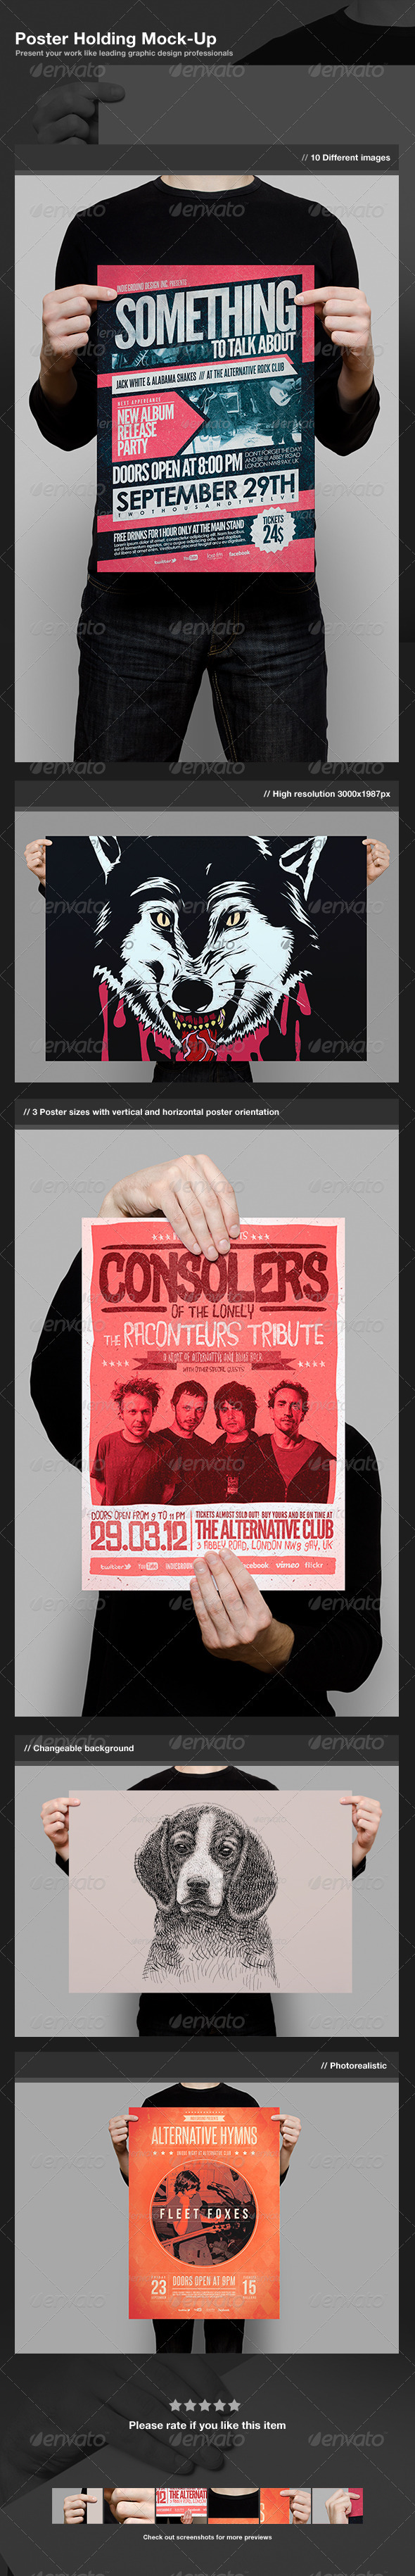 GraphicRiver Poster Holding Mock-Up 2772254